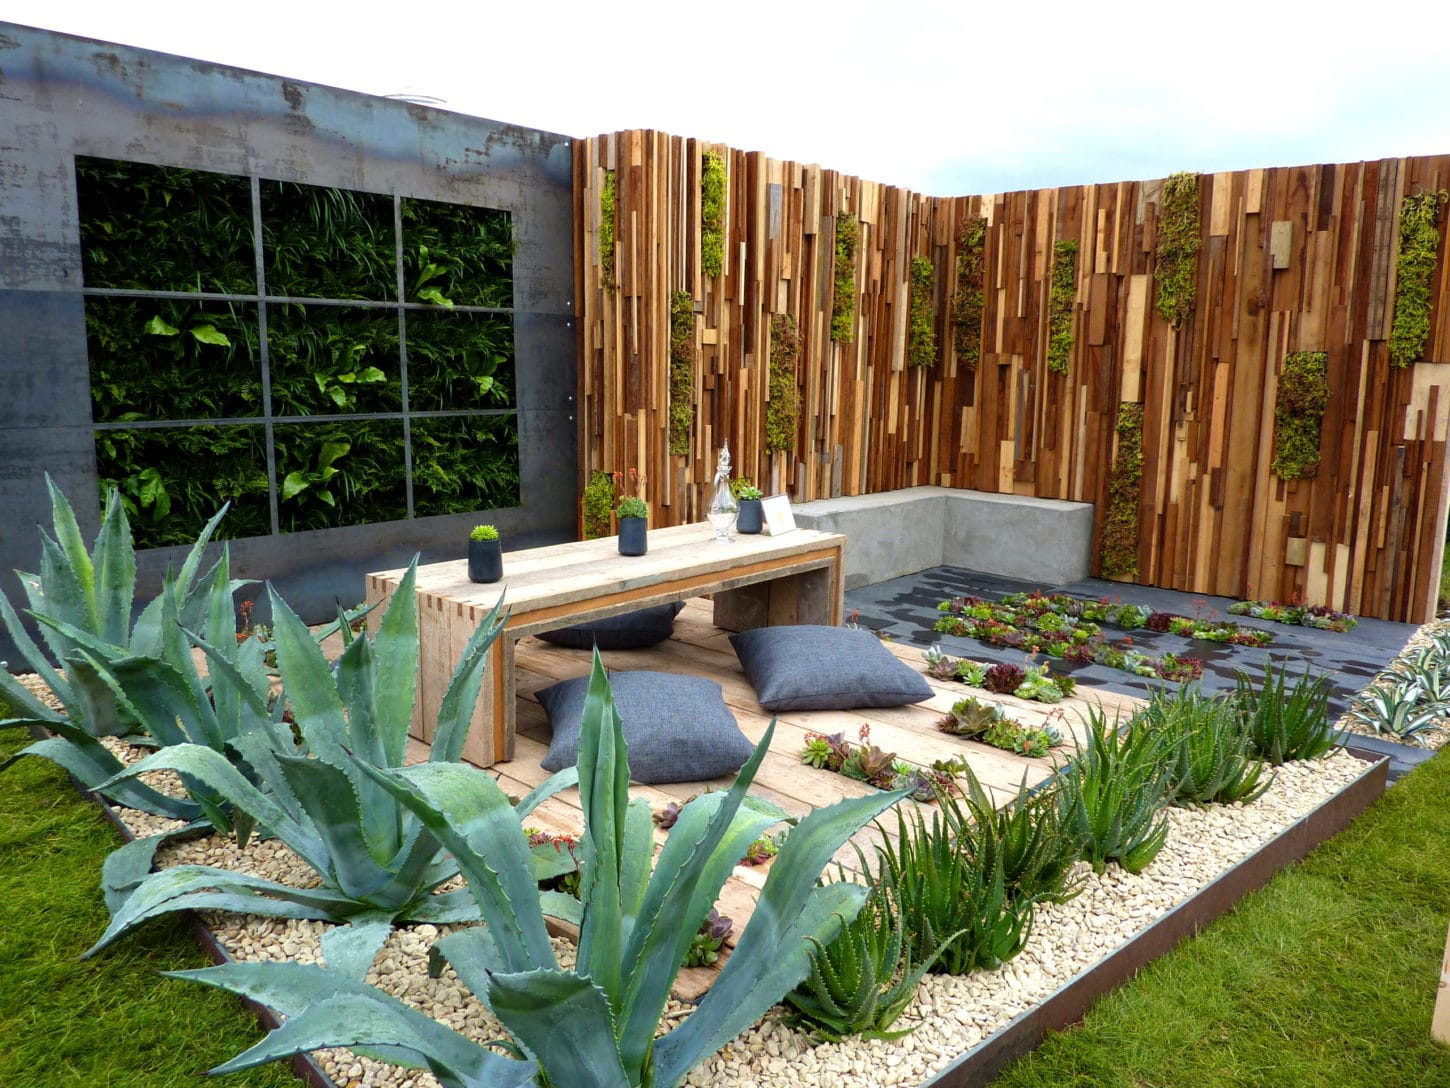 Industrial garden design ideas for Garden designs ideas pictures